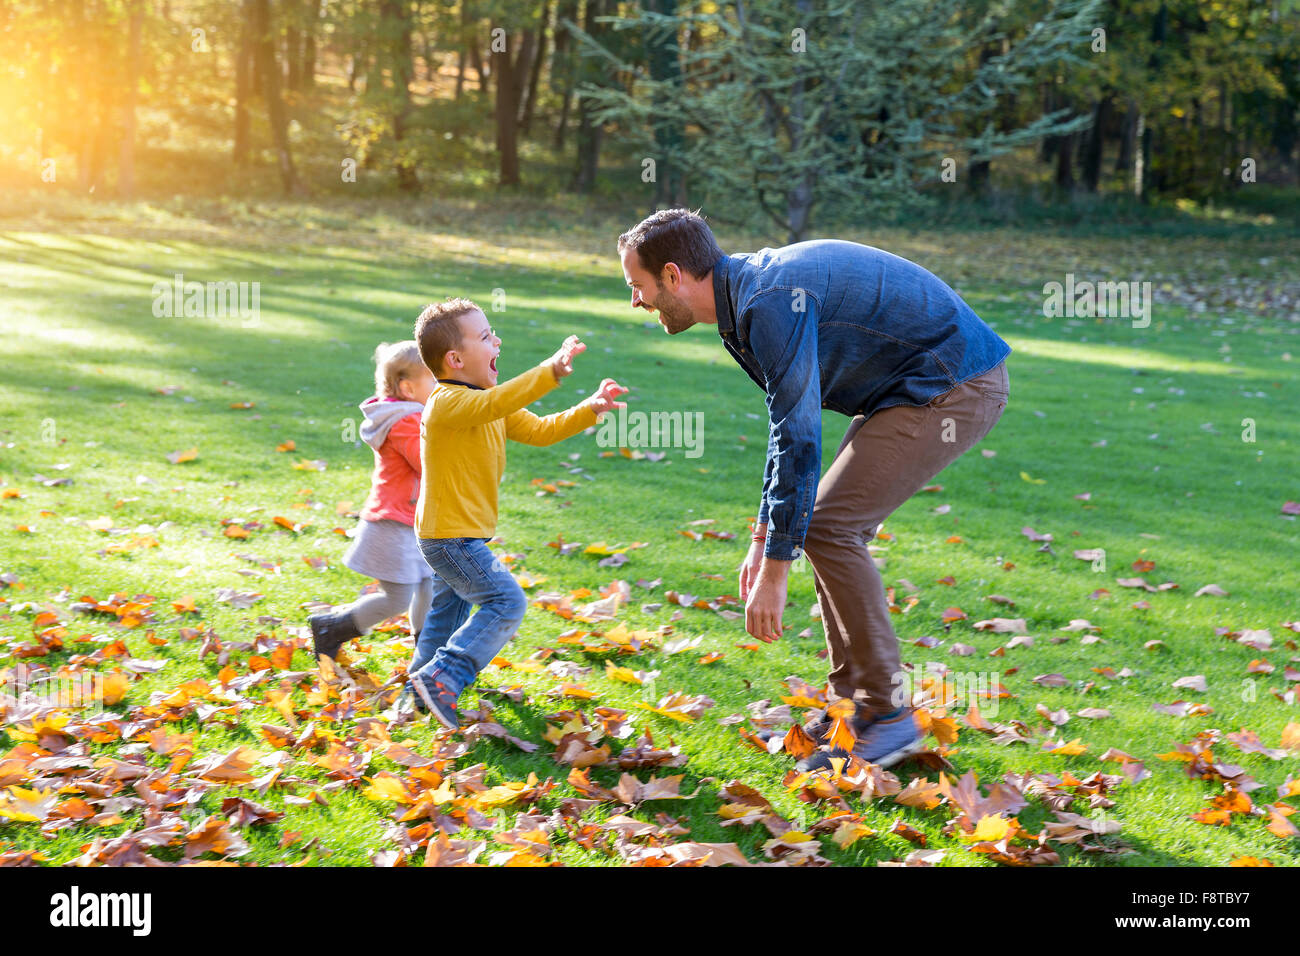 Father with his children playing in park - Stock Image